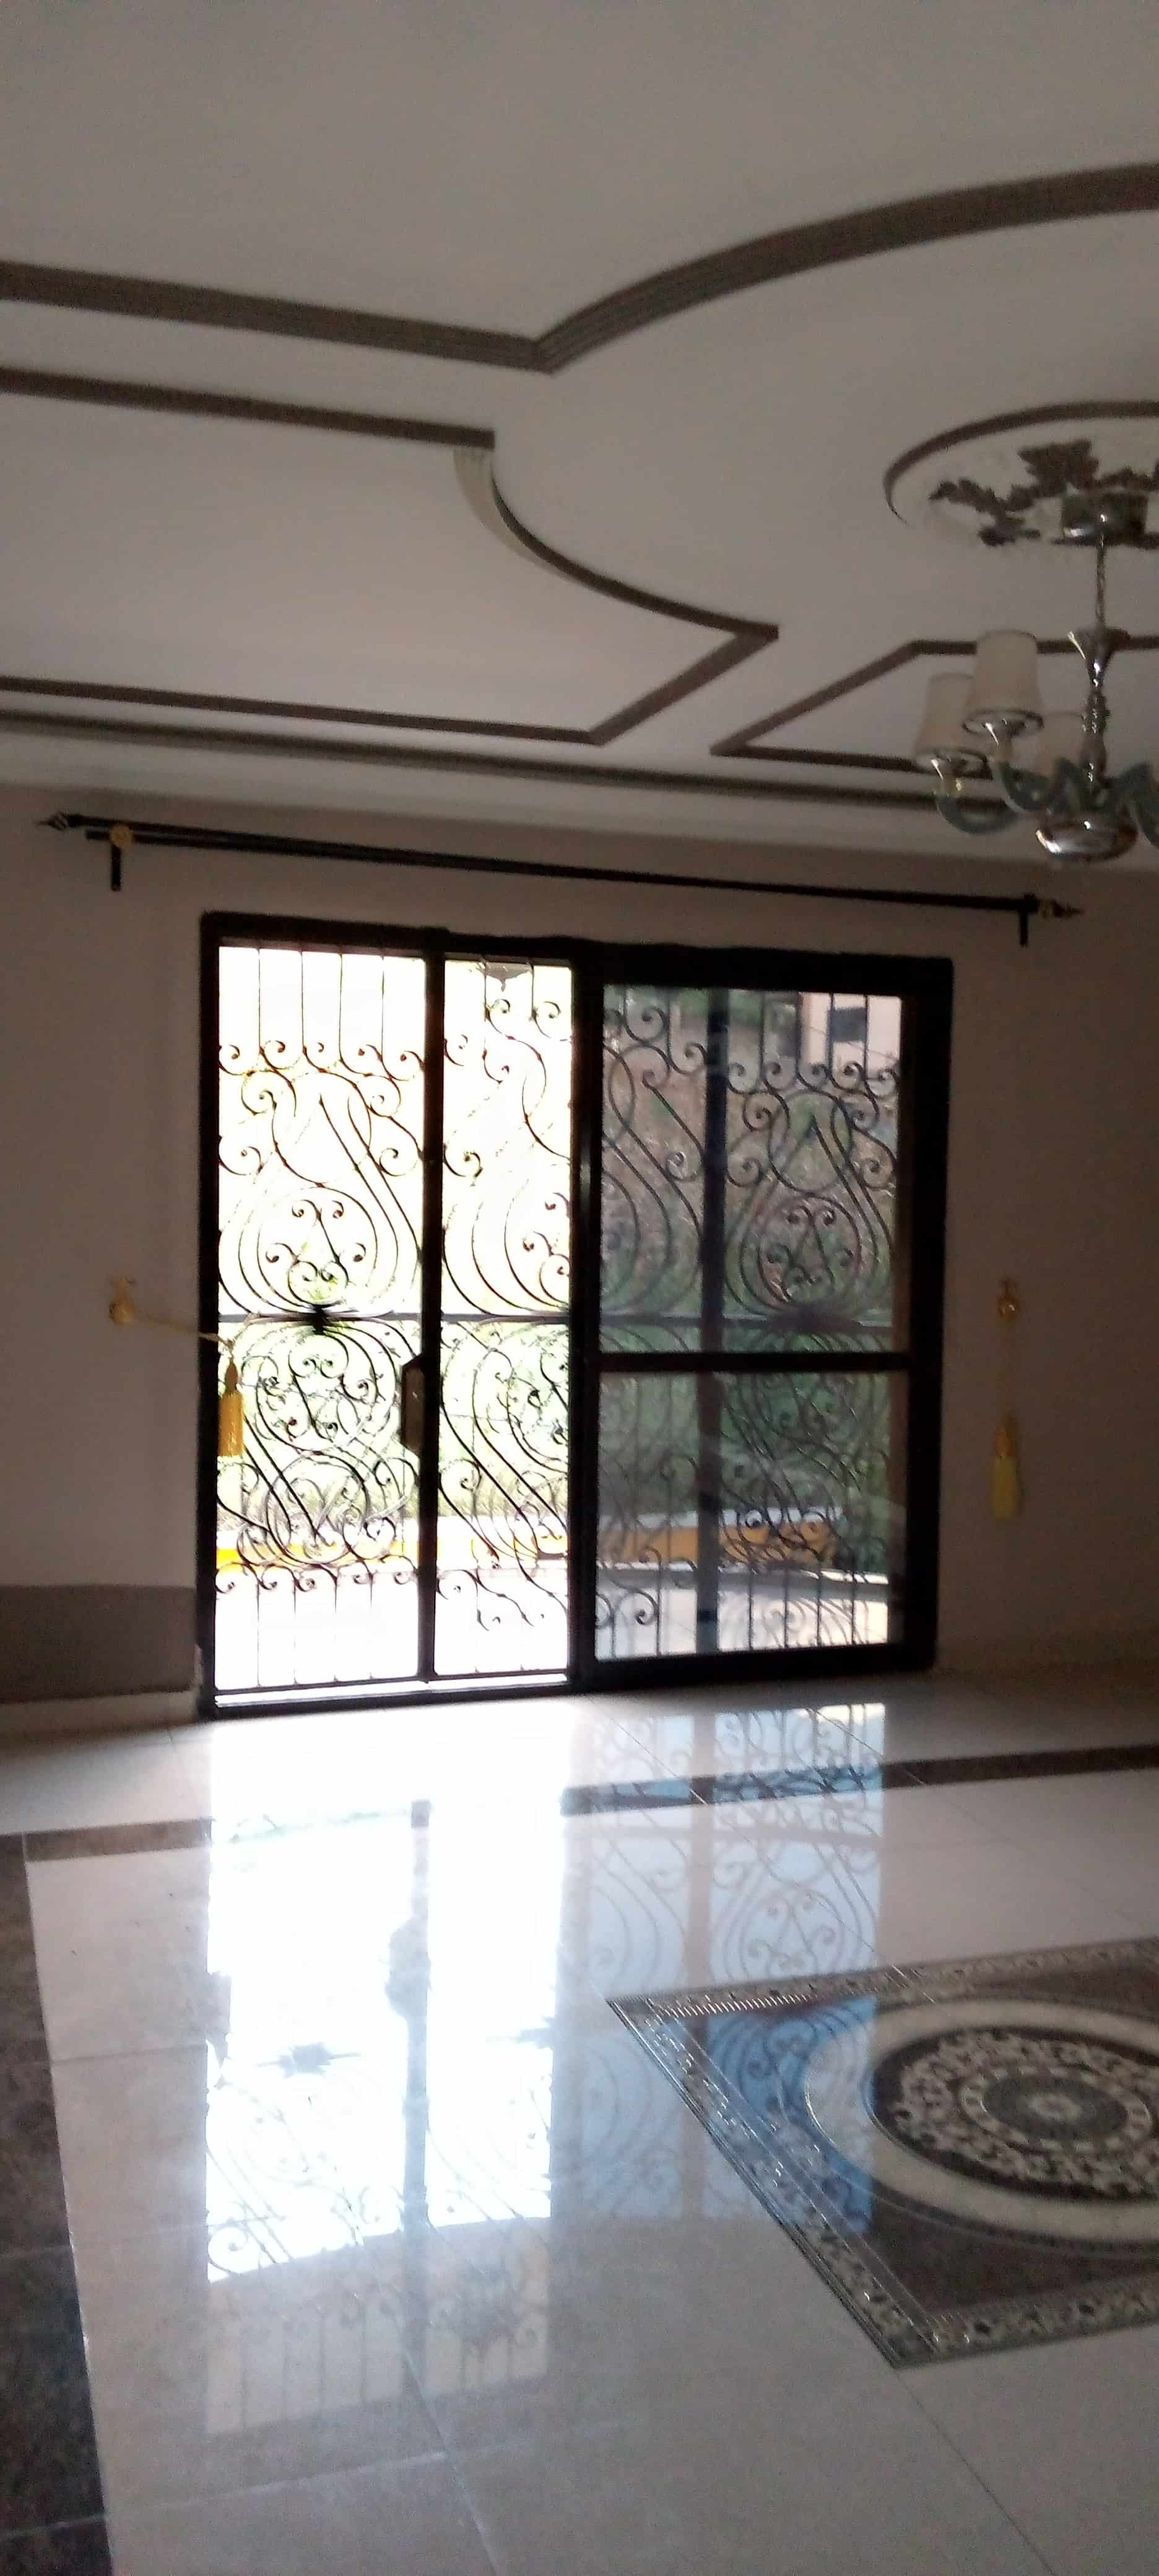 Apartment to rent - Yaoundé, Ngousso, Ngousso - 1 living room(s), 2 bedroom(s), 3 bathroom(s) - 200 000 FCFA / month